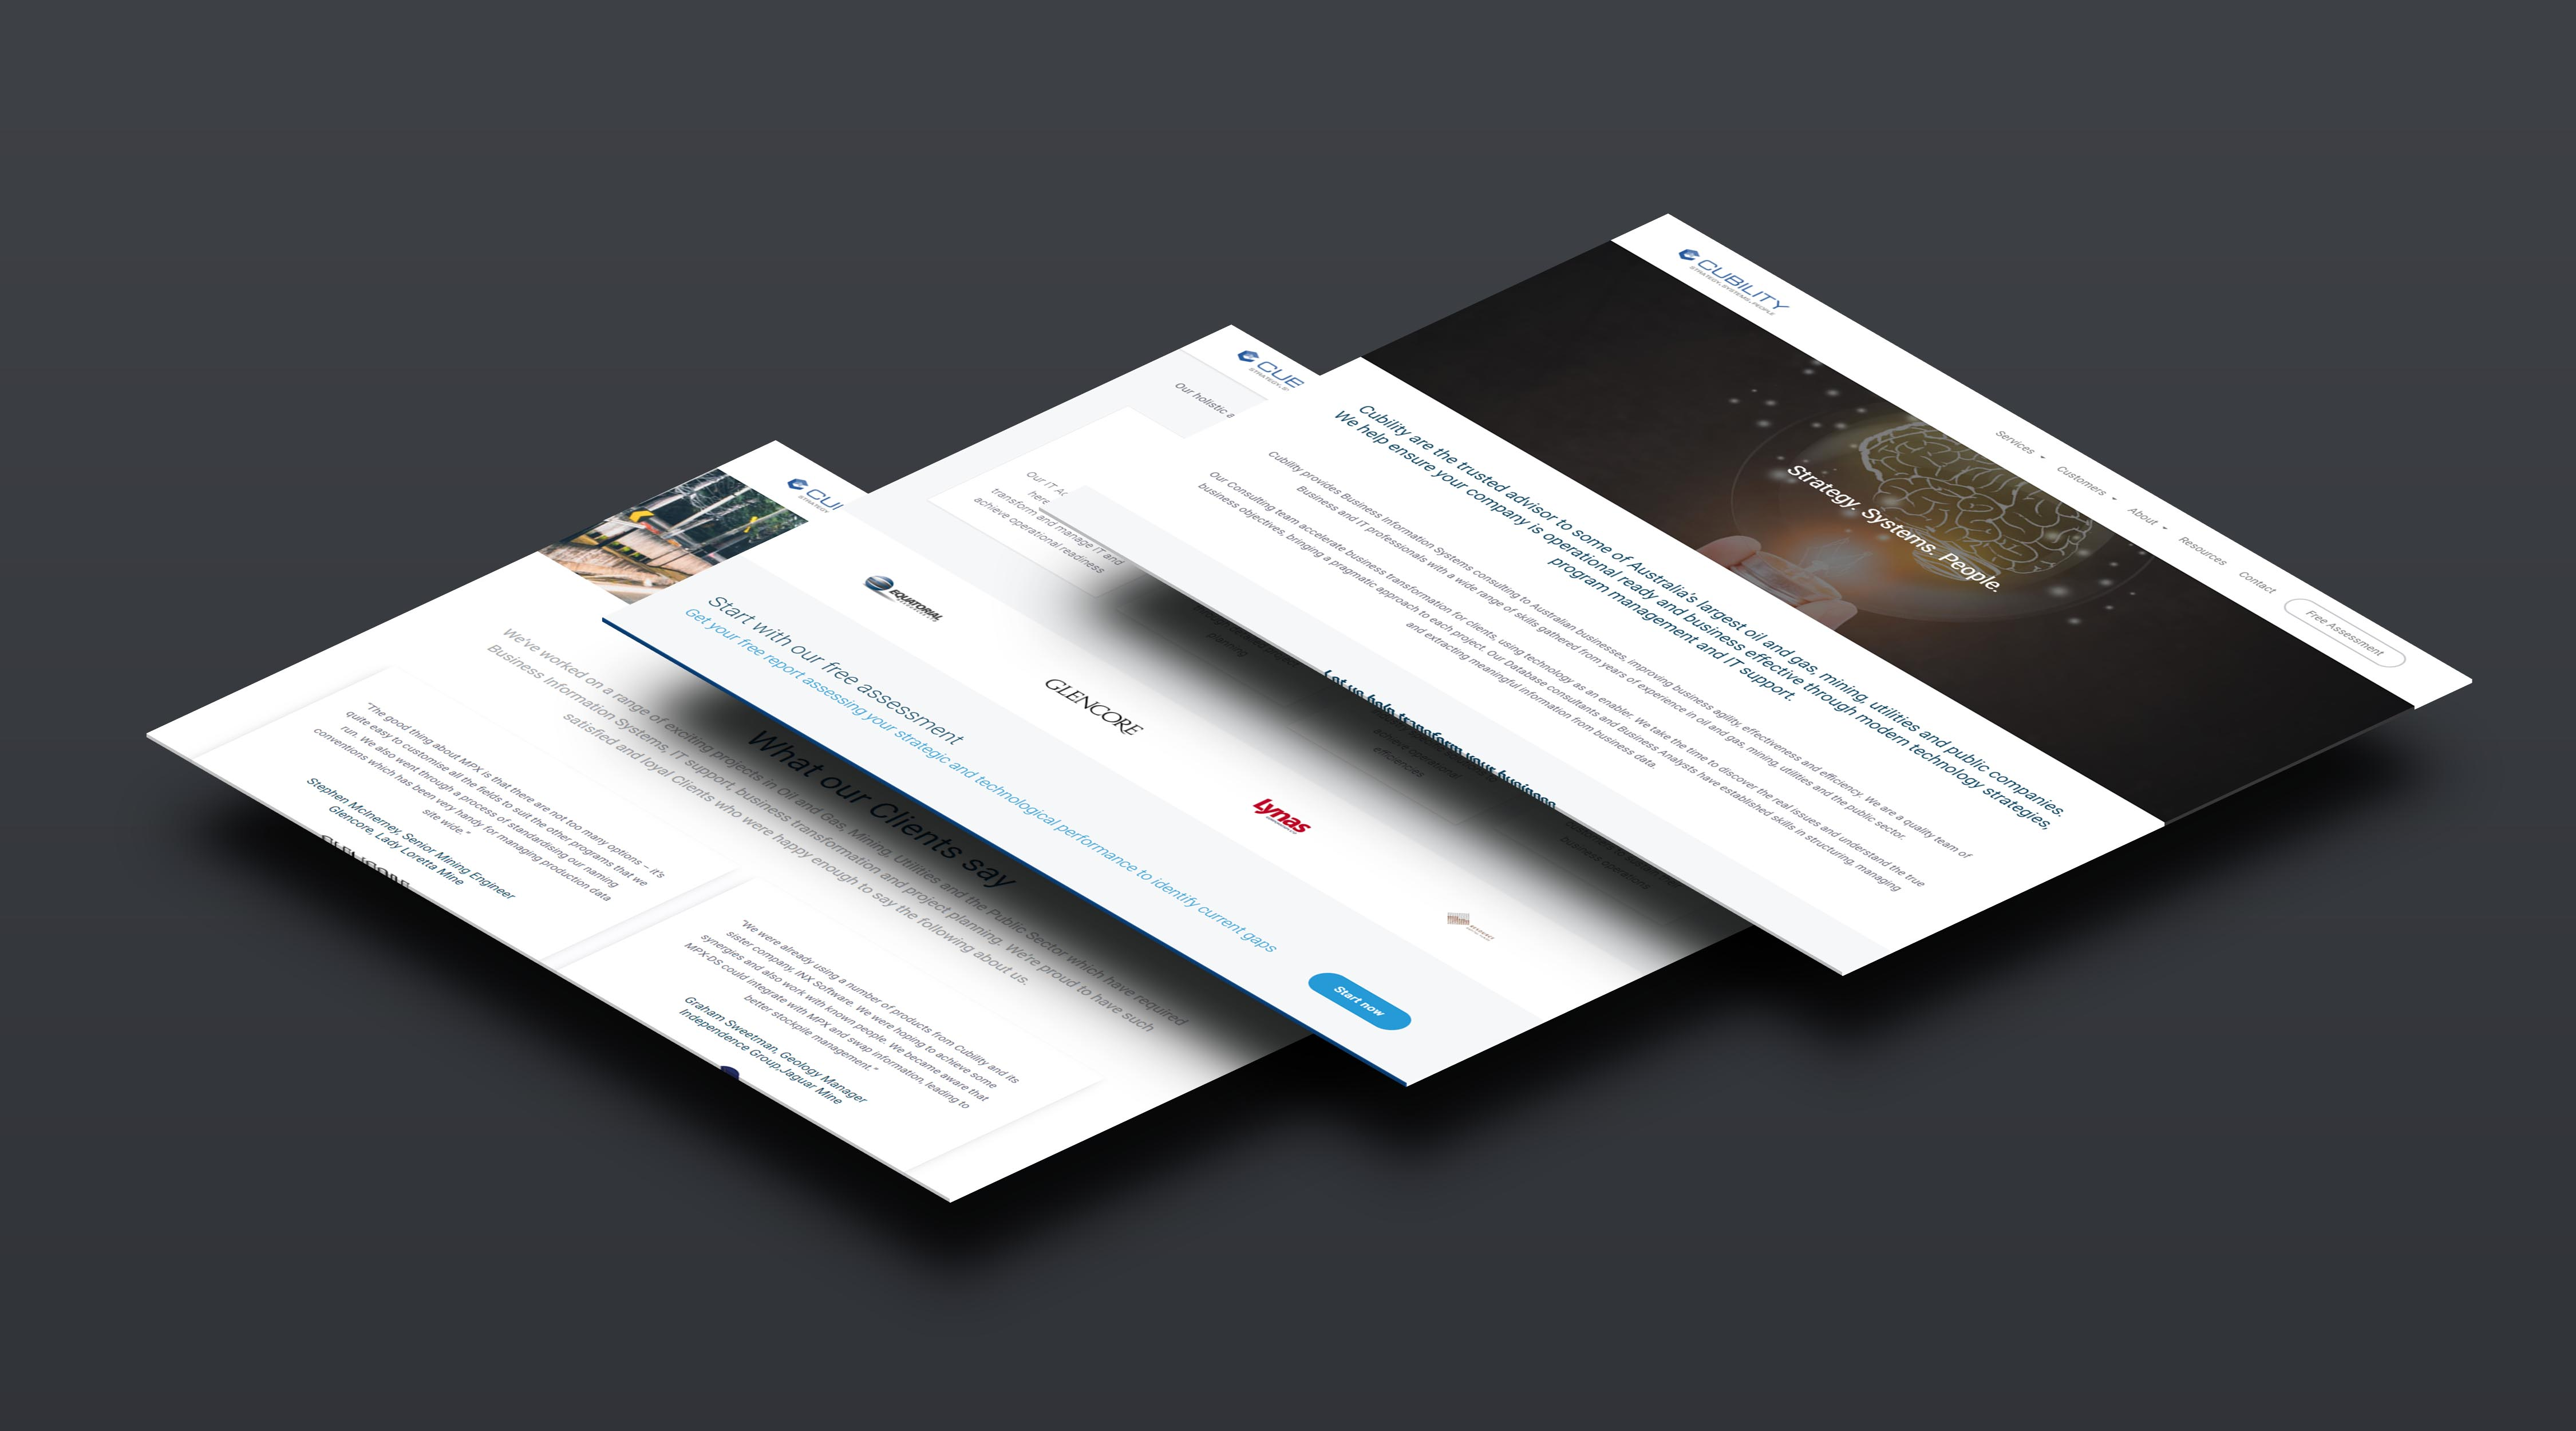 Bray Marketing completes website design and build for Cubility